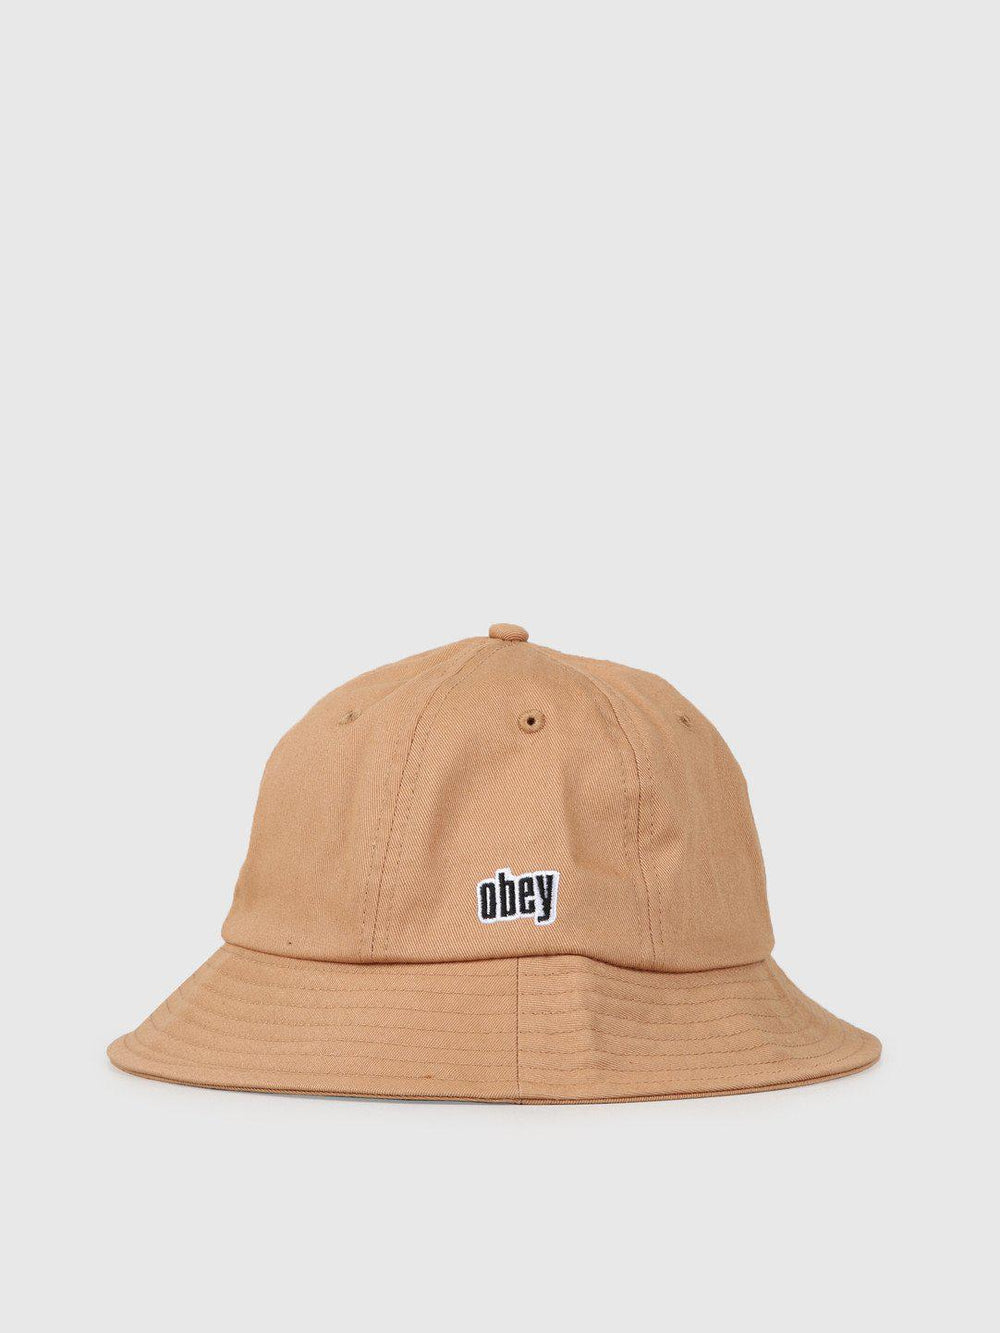 Obey Worldwide Dominic Bucket Hat-The Trendy Walrus